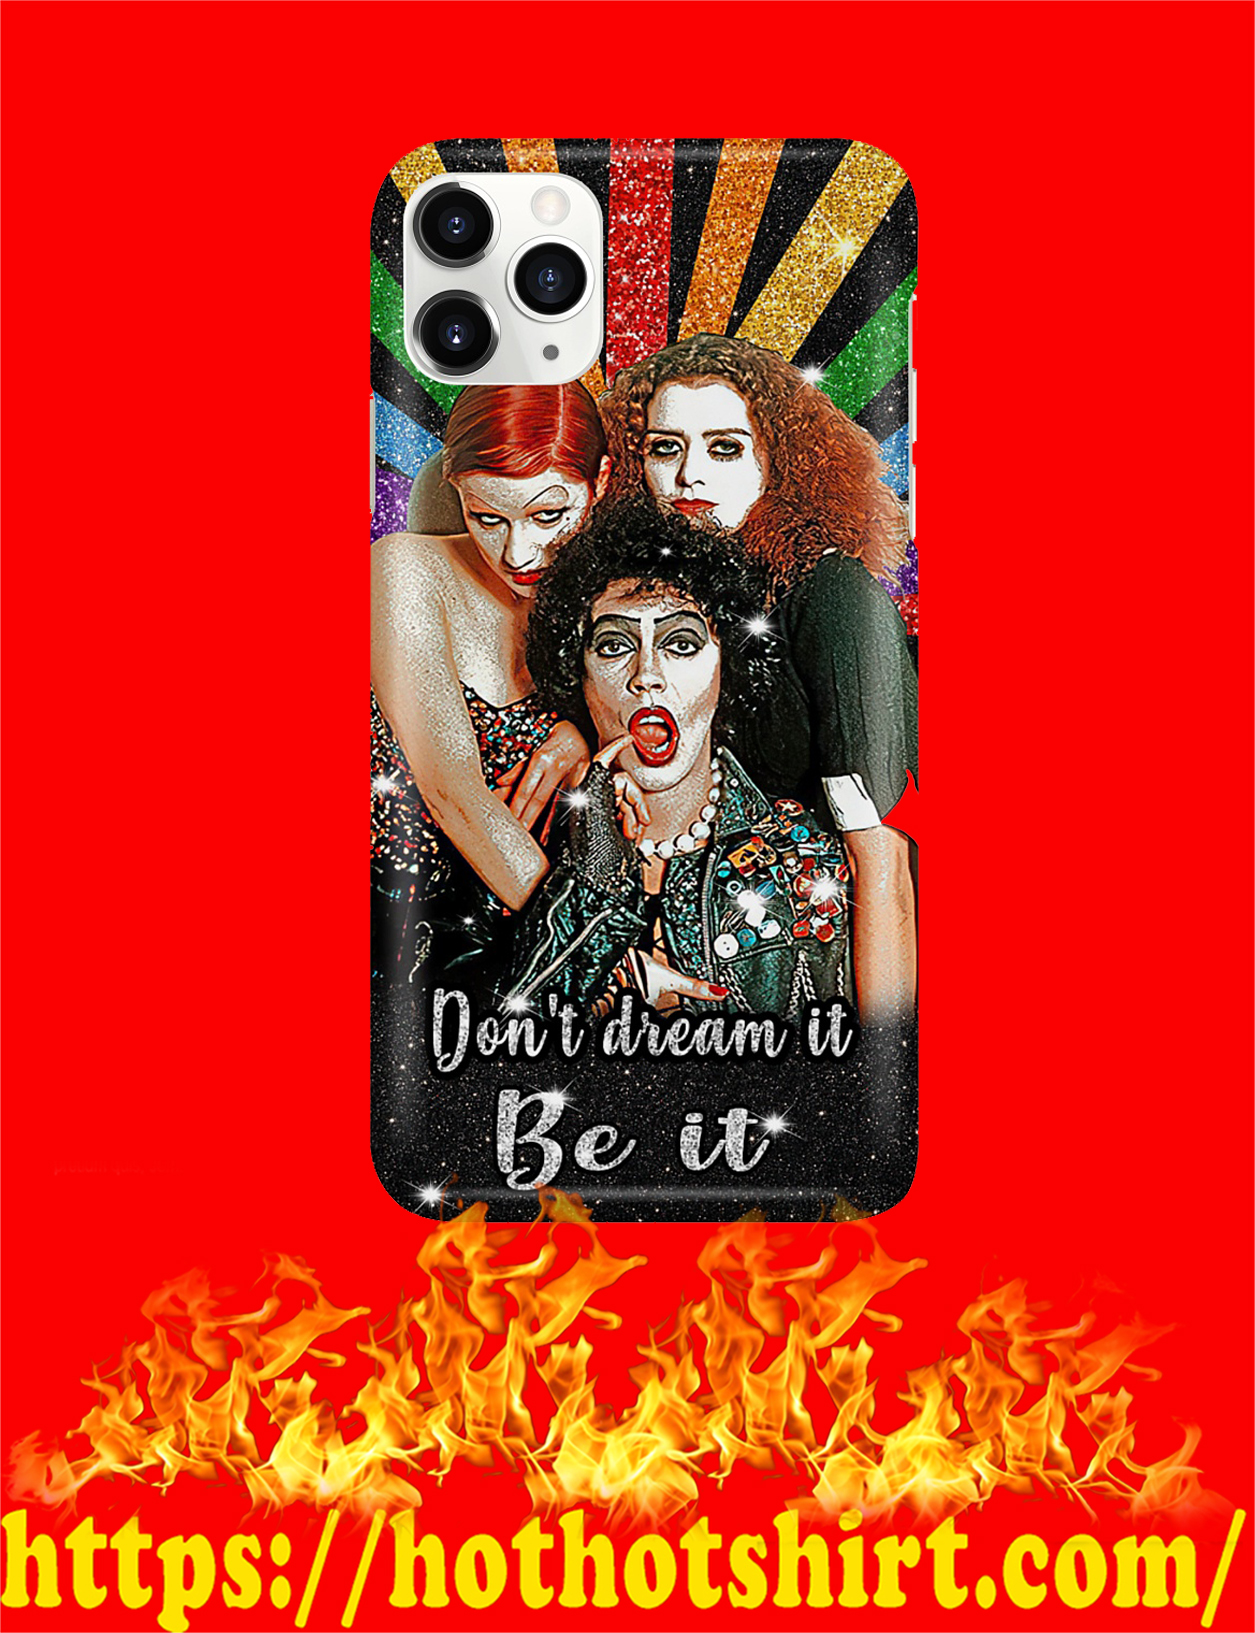 Rocky horror picture show don't dream it be it phone case - pic 3